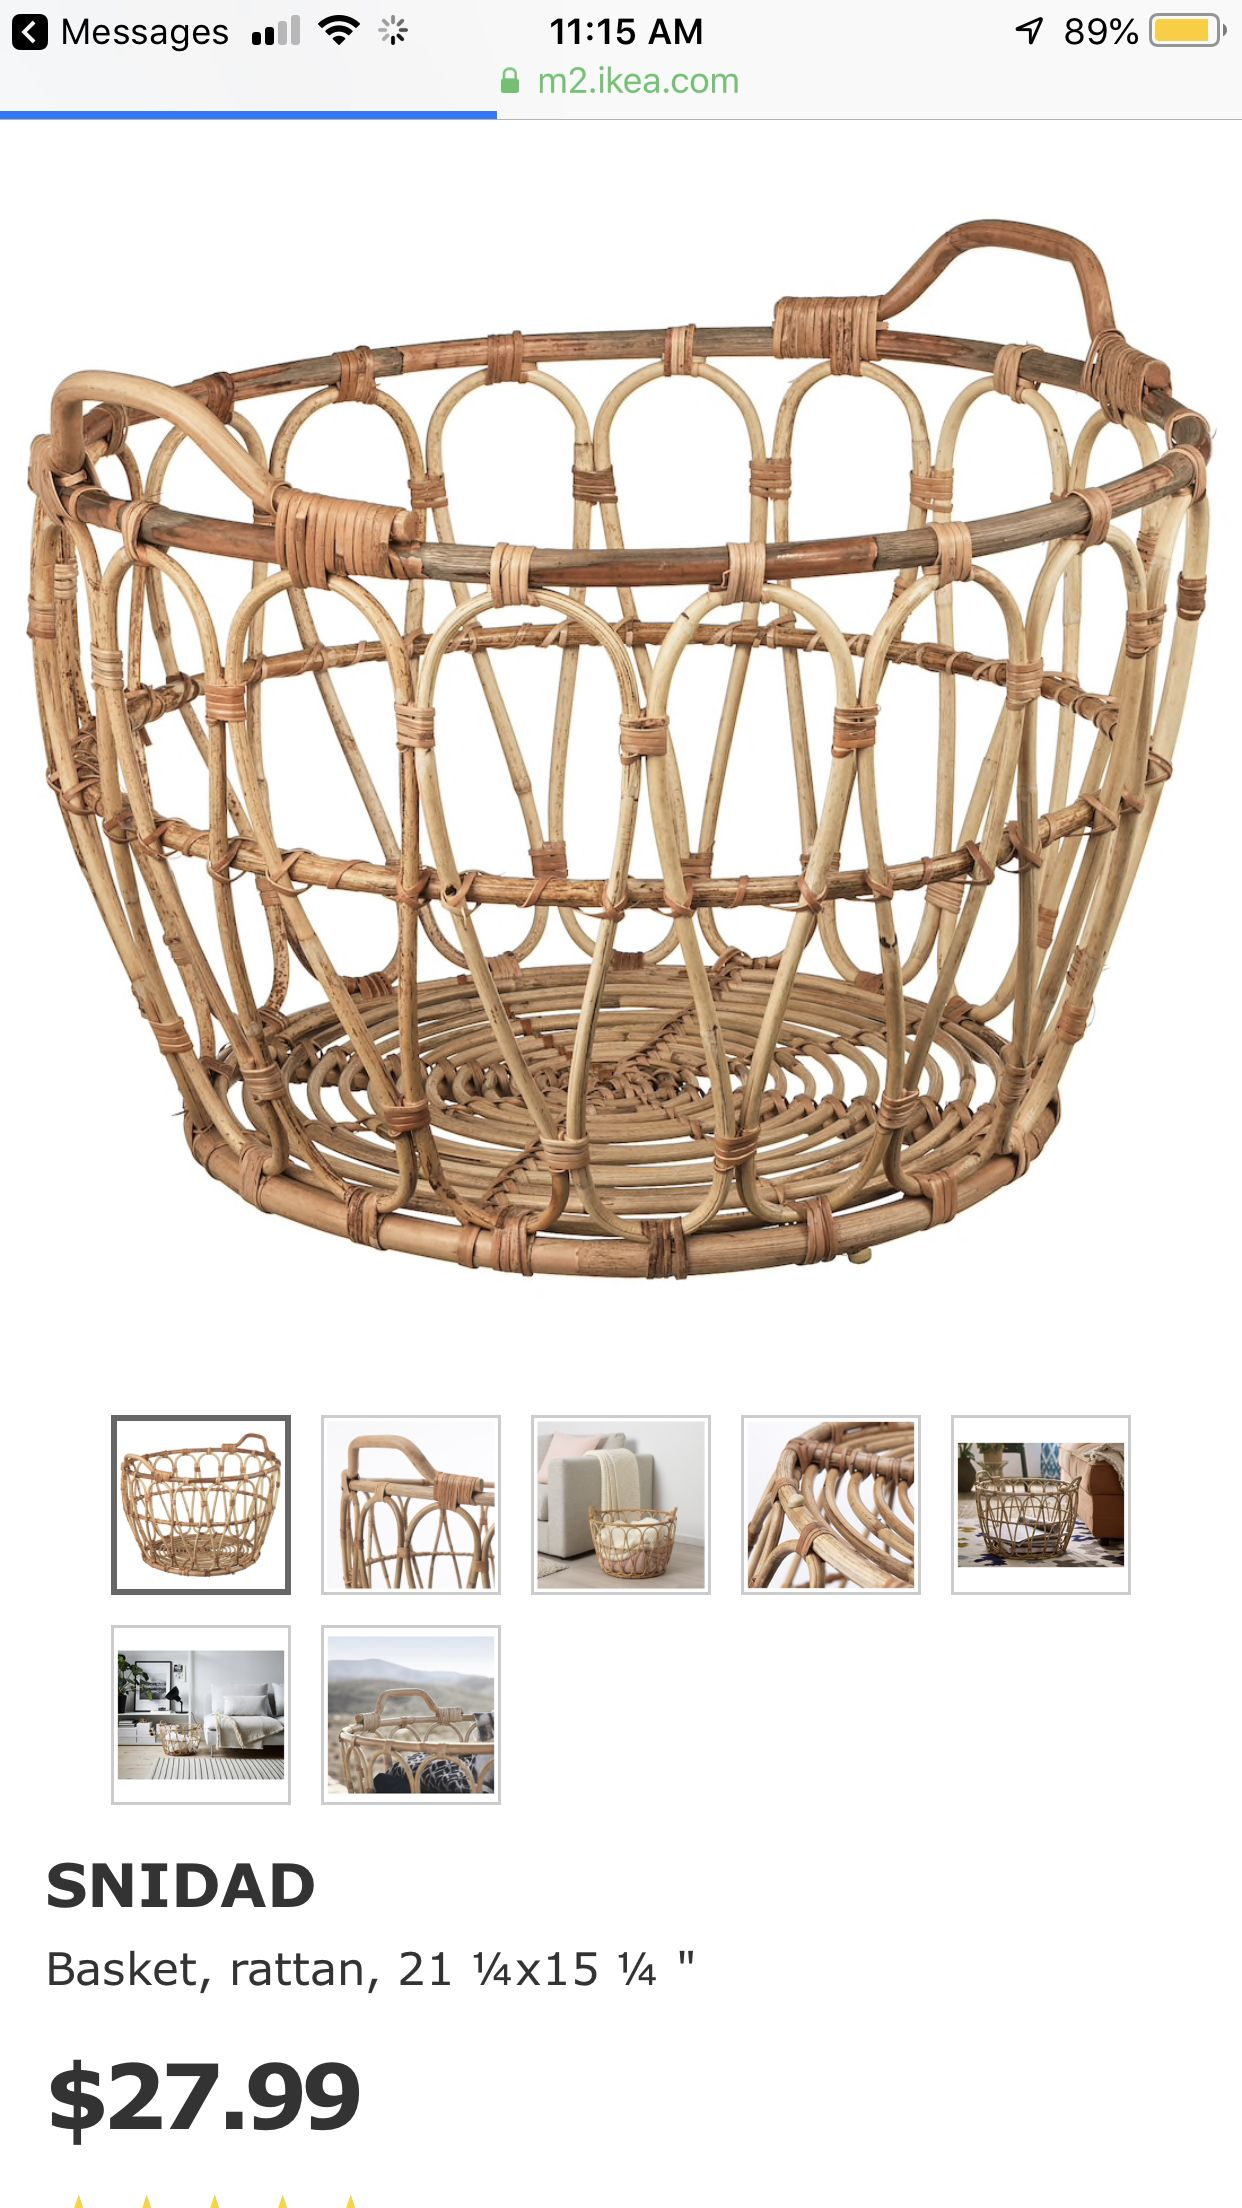 Snidad Basket Rattan Ikea In 2020 Amazon Home Decor Home Decor Styles Decor